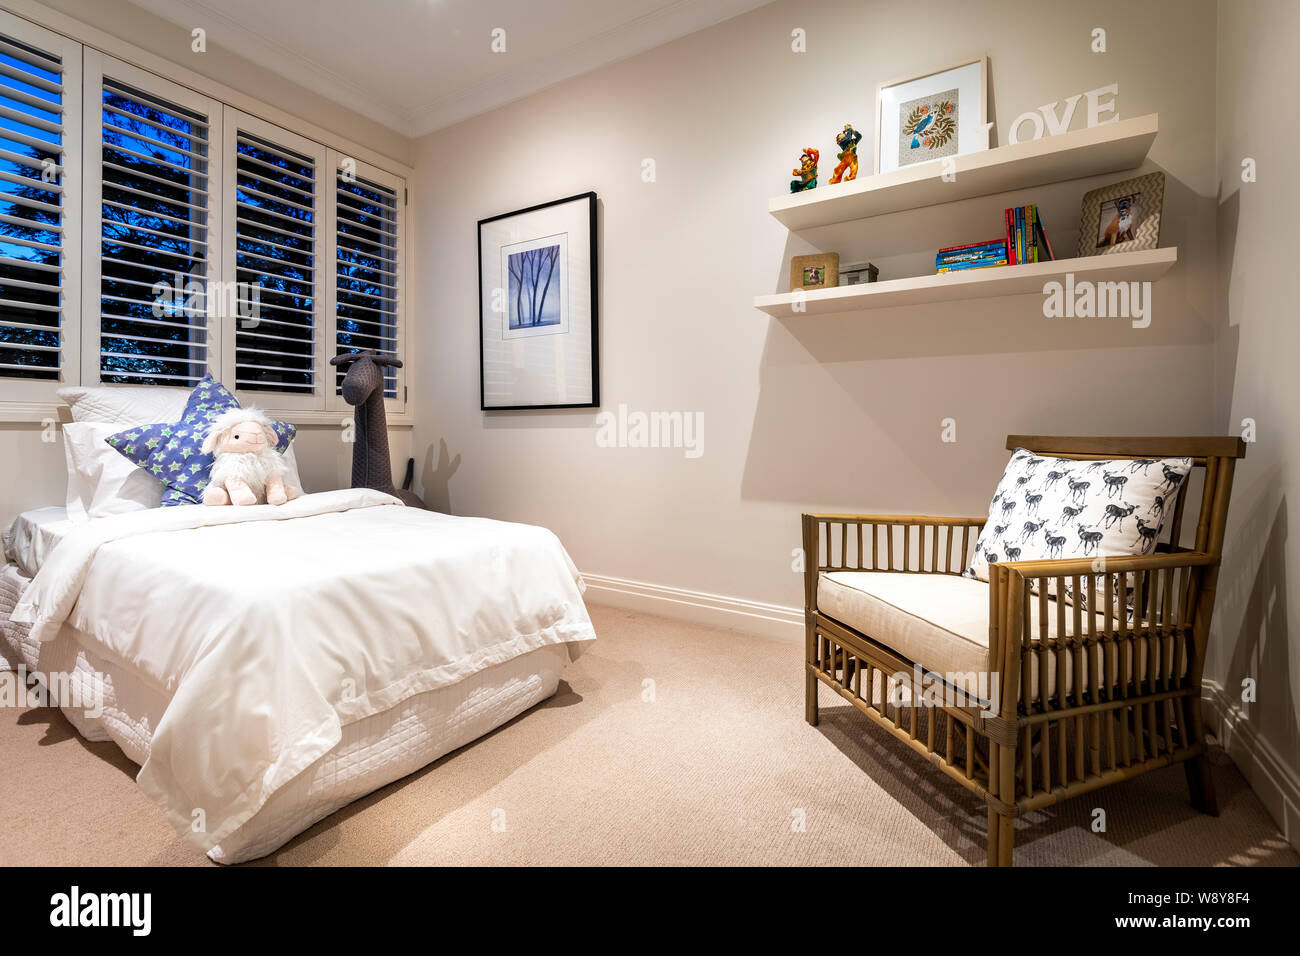 Sydney, Australia - August 1 2019: Child\'s bedroom in a ...